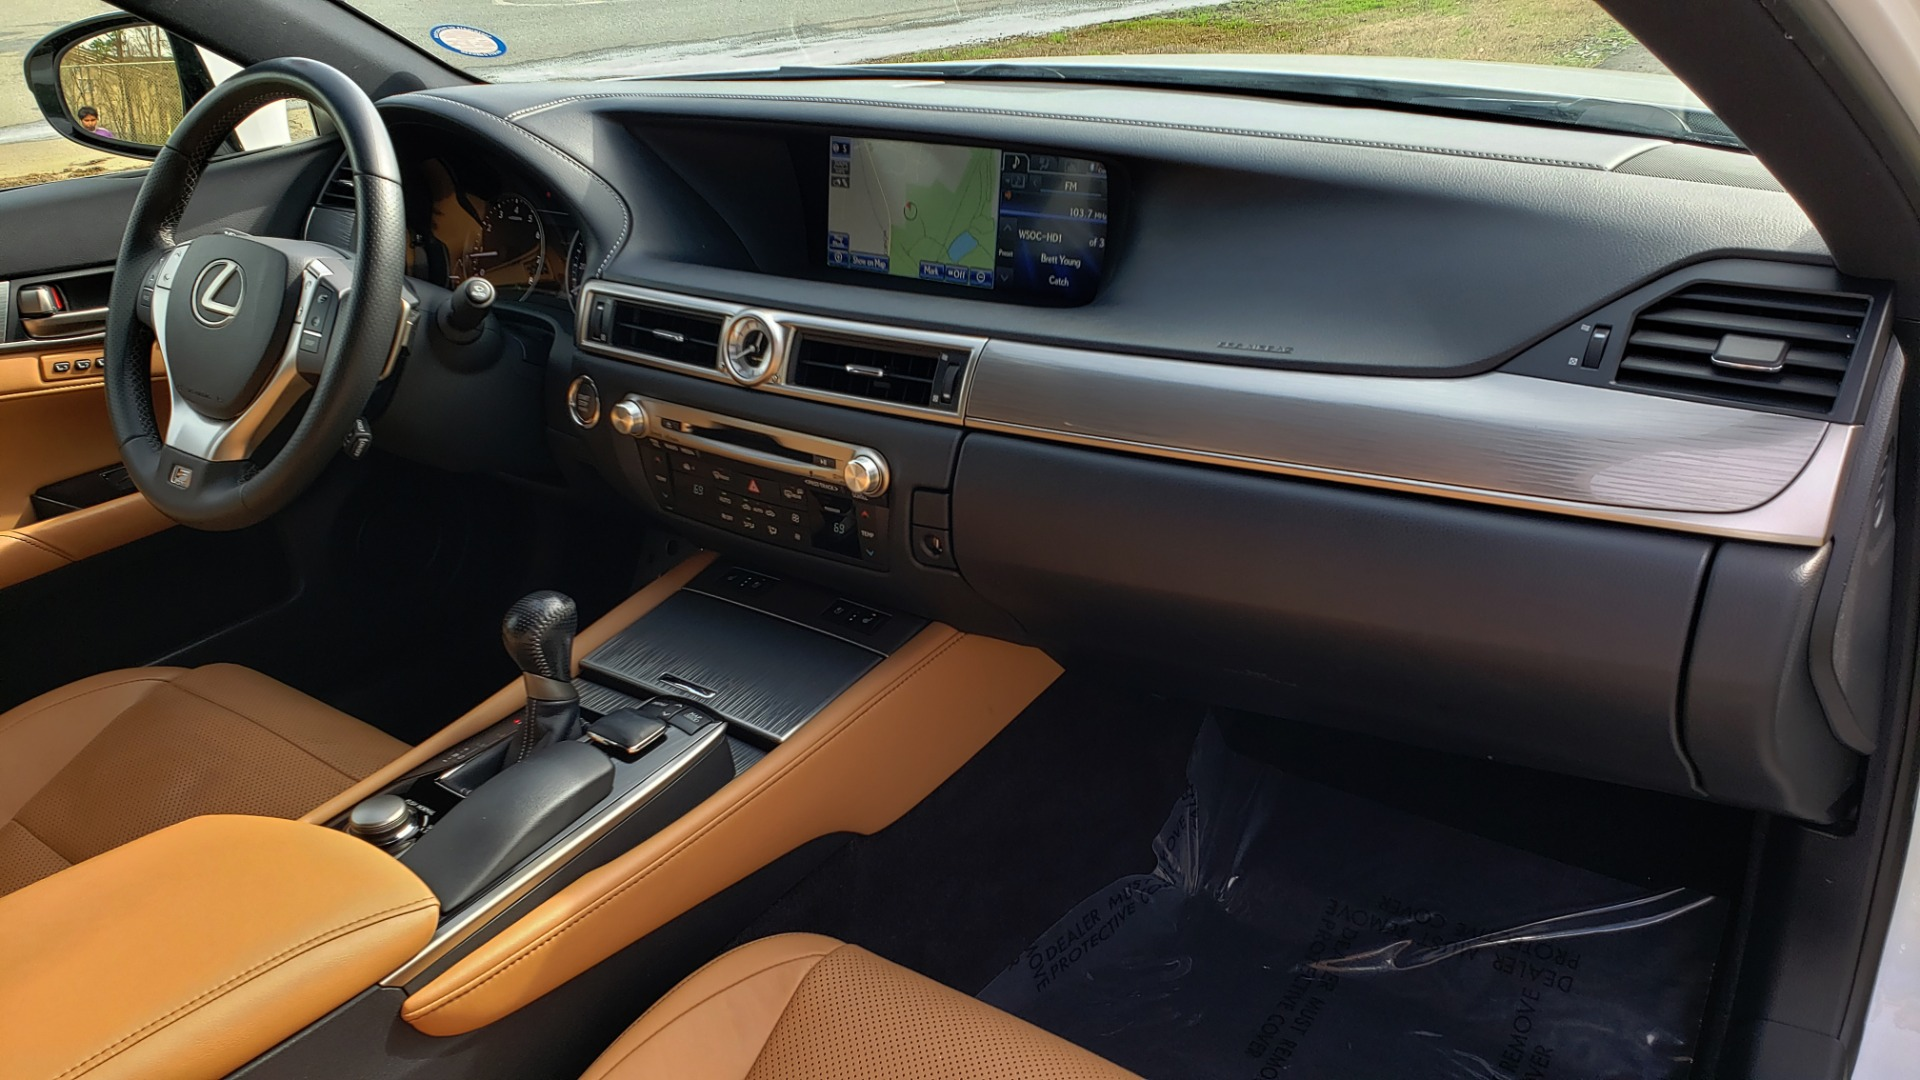 Used 2013 Lexus GS 350 F-SPORT / NAV / SUNROOF / BSM / PRK ASST / REARVIEW for sale Sold at Formula Imports in Charlotte NC 28227 63